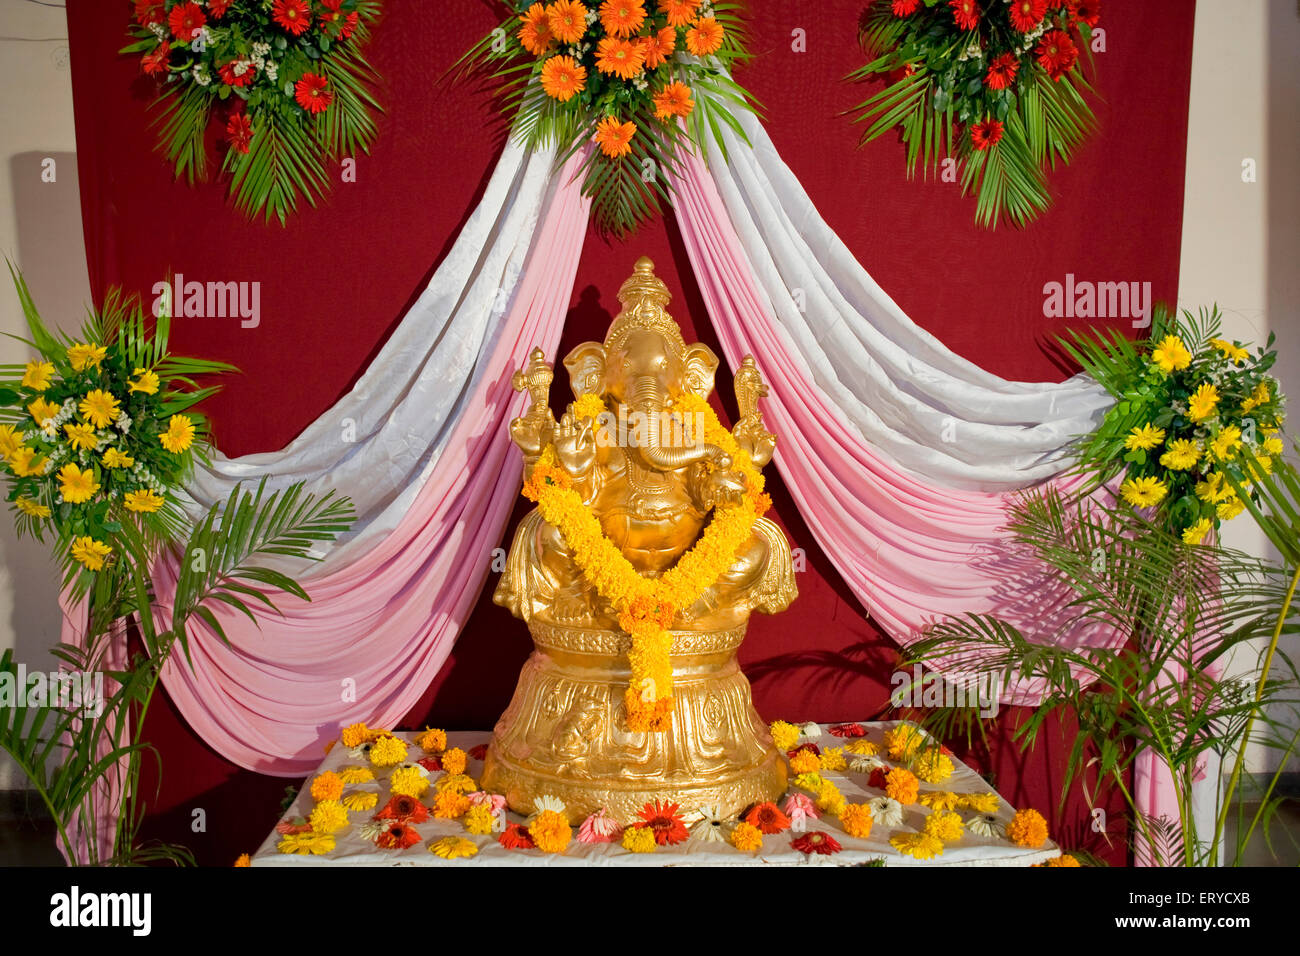 statue of lord ganesh elephant headed god welcome